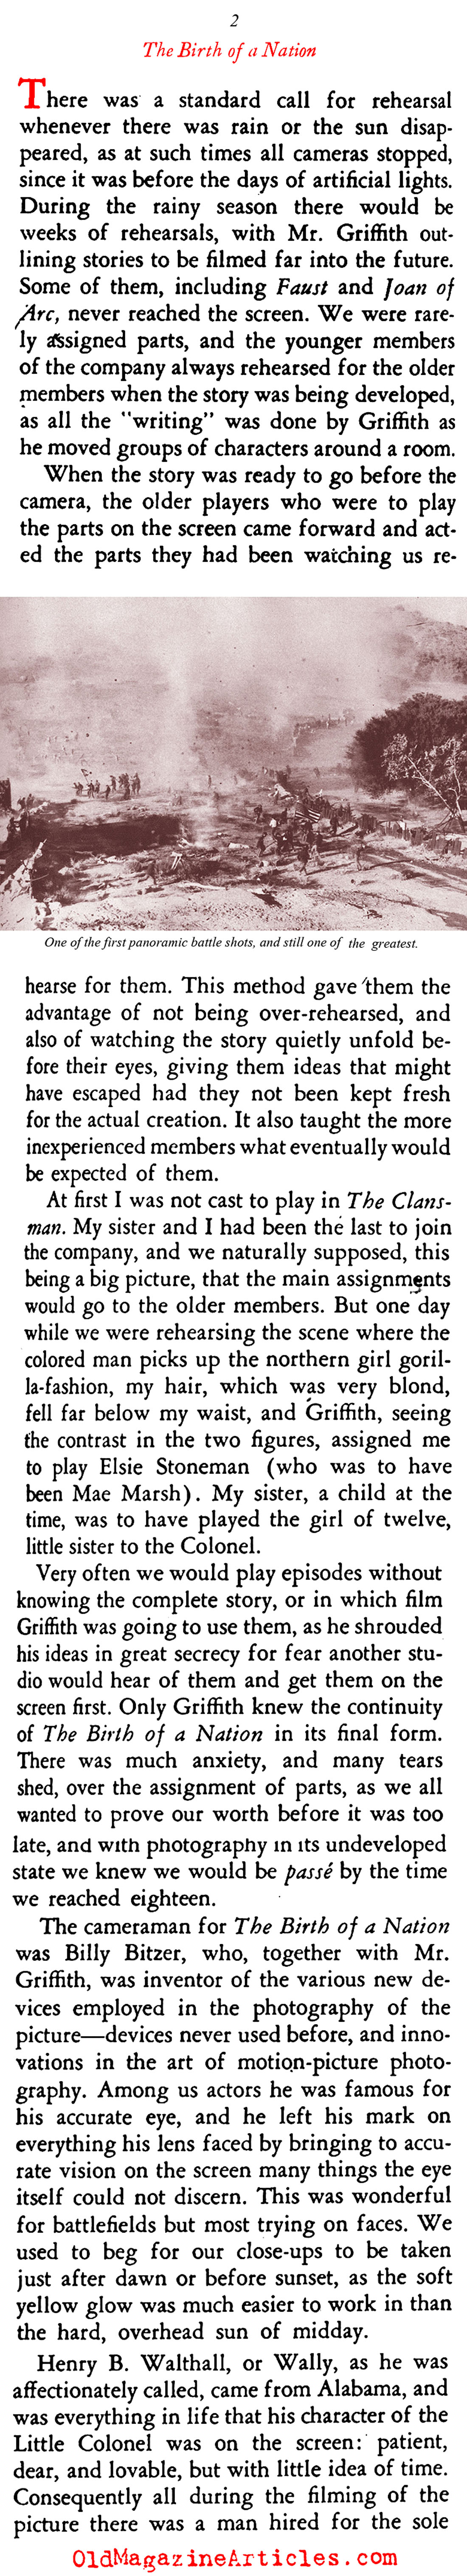 Lillian Gish Recalls ''The Birth of a Nation'' (Stage Magazine, 1937)